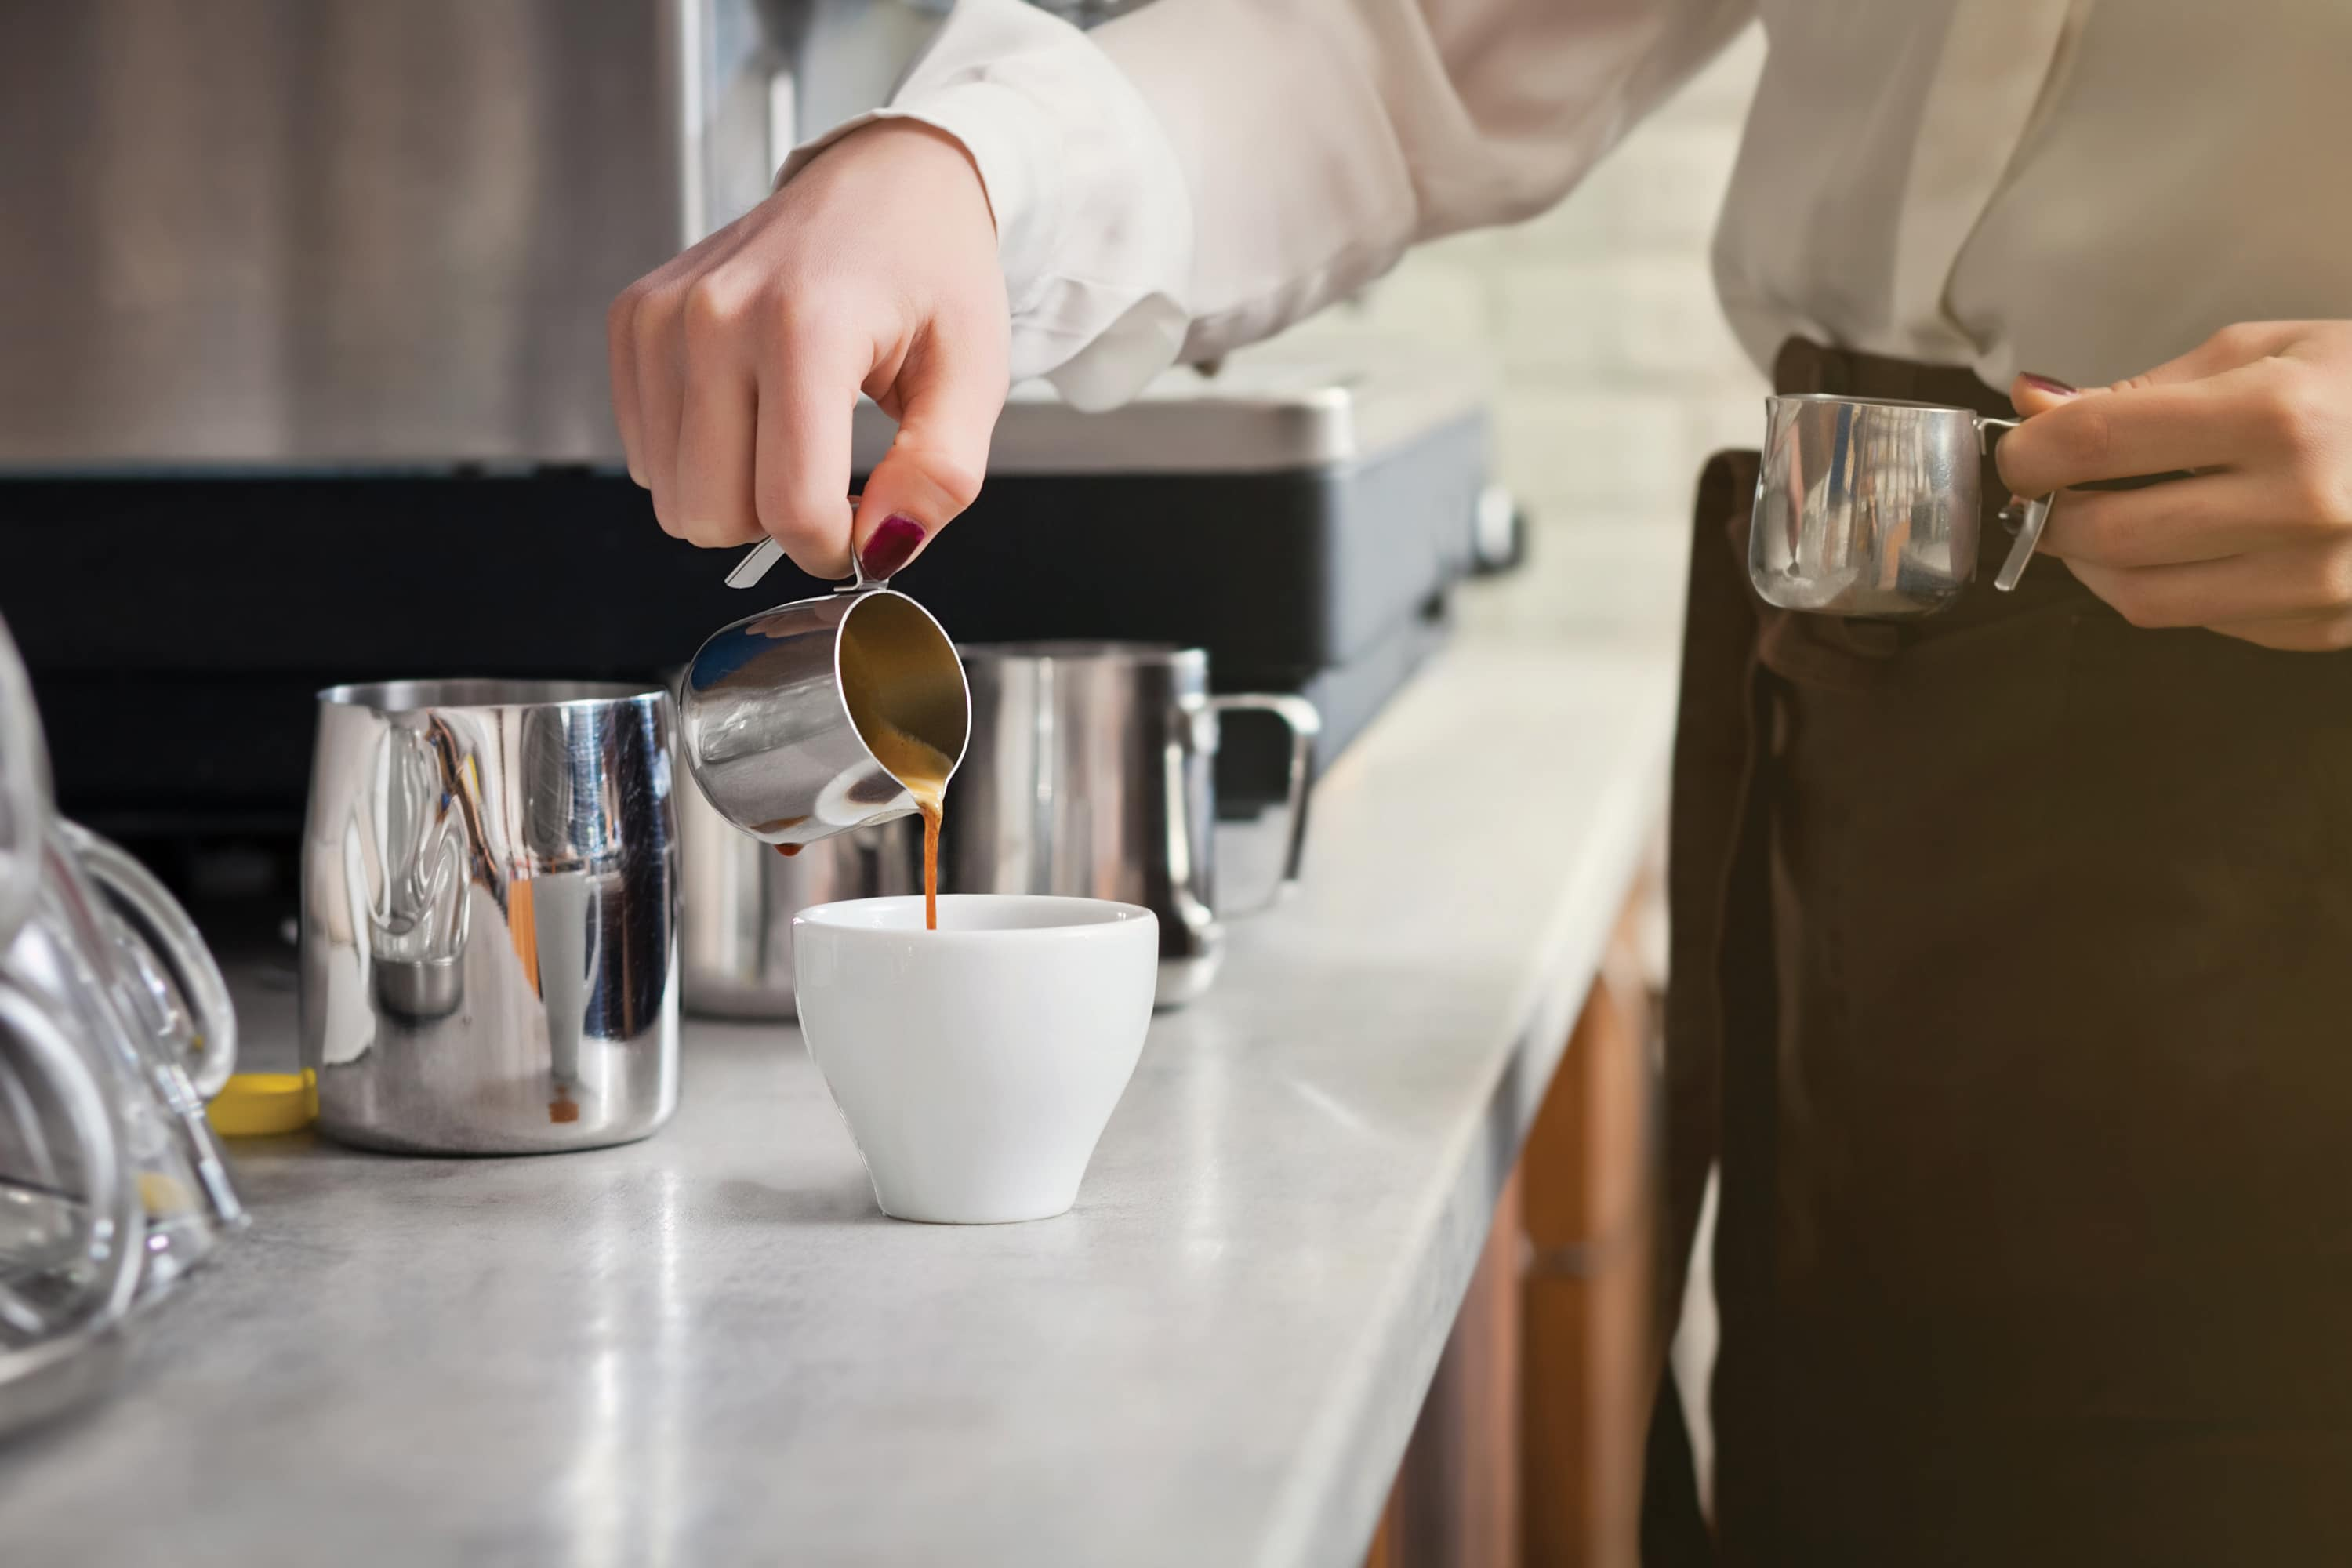 coffee at the office - Coffee Service Corner: The Coffee Service Brew Site